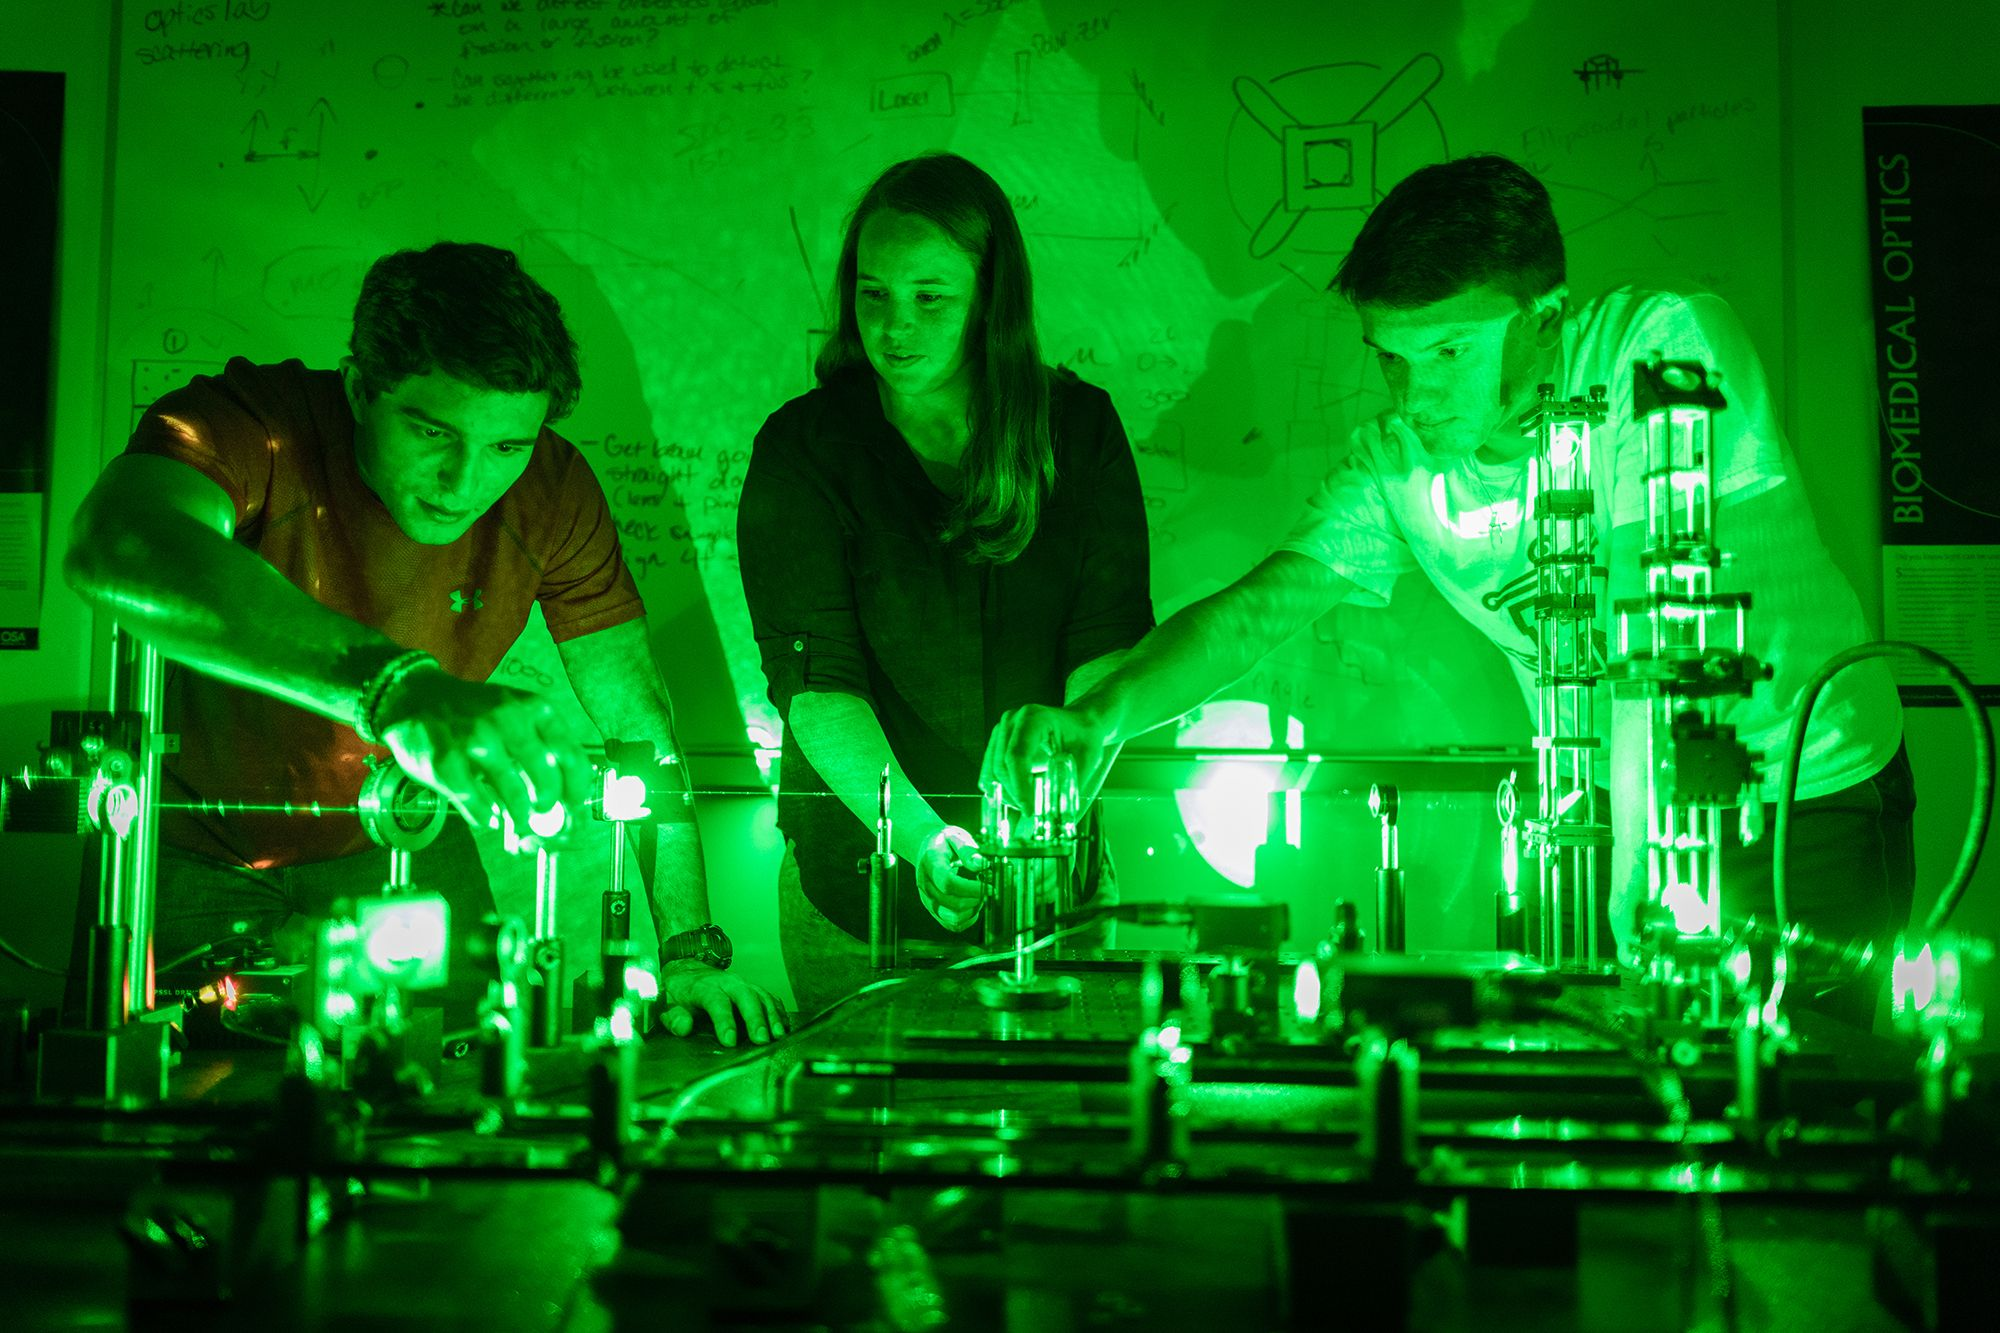 Students researching lasers for a physics lab.